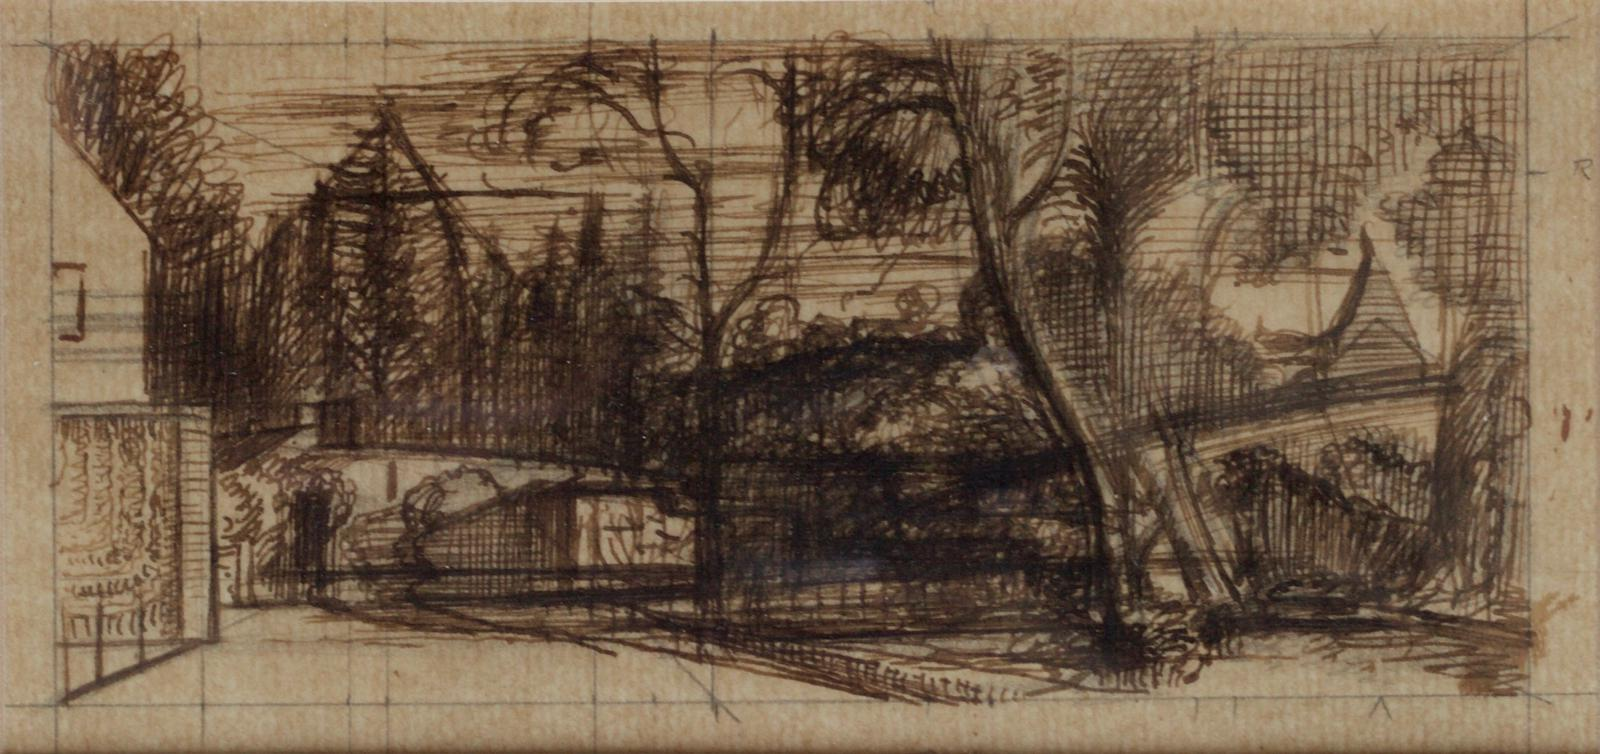 Sir Thomas Monnington Study for the Postman 1948 Wash over pencil on tracing paper 10.2x16.5cm